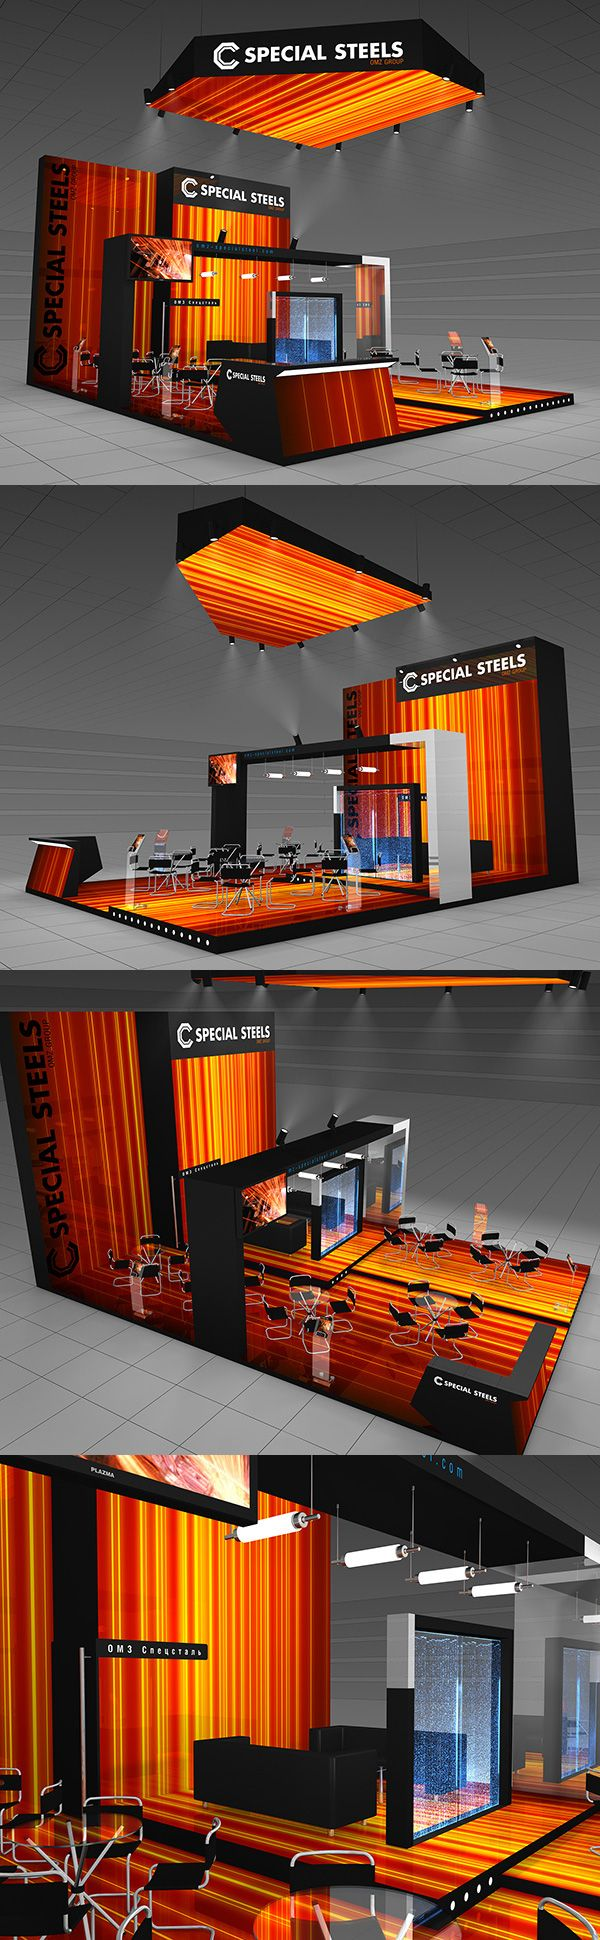 Special steels exhibition stand on Behance